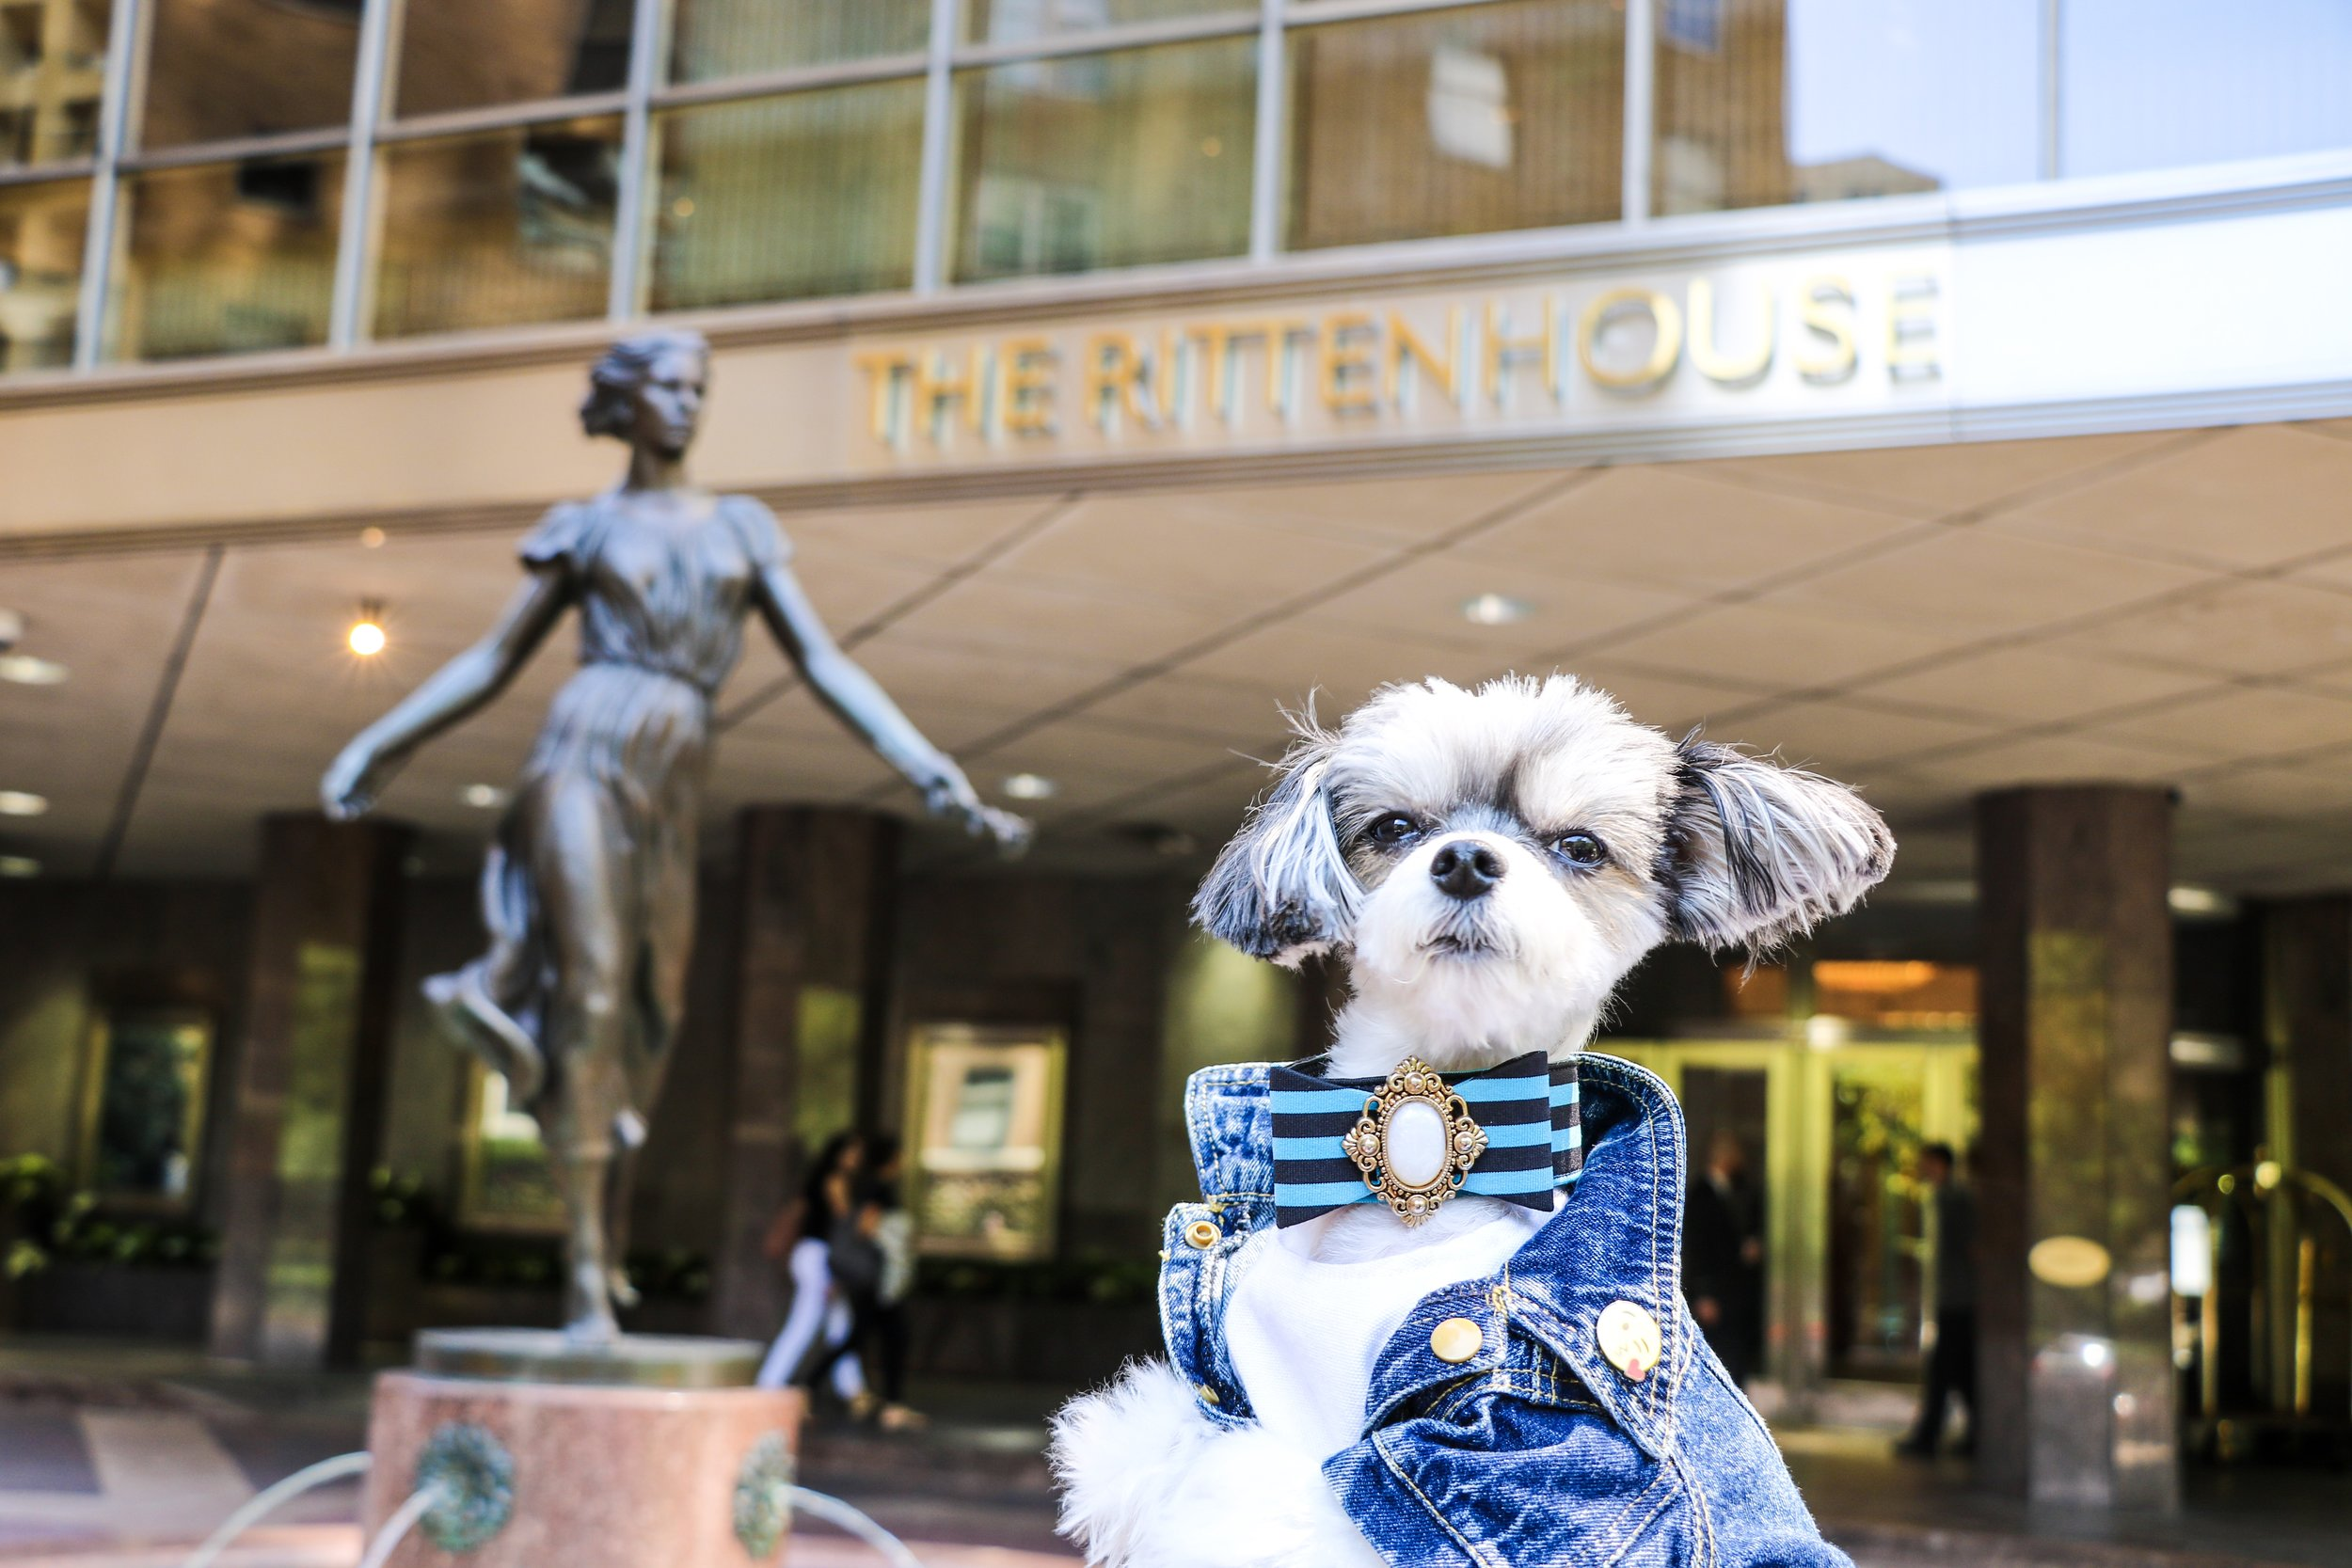 Tinkerbelle posting in front of The Rittenhouse.